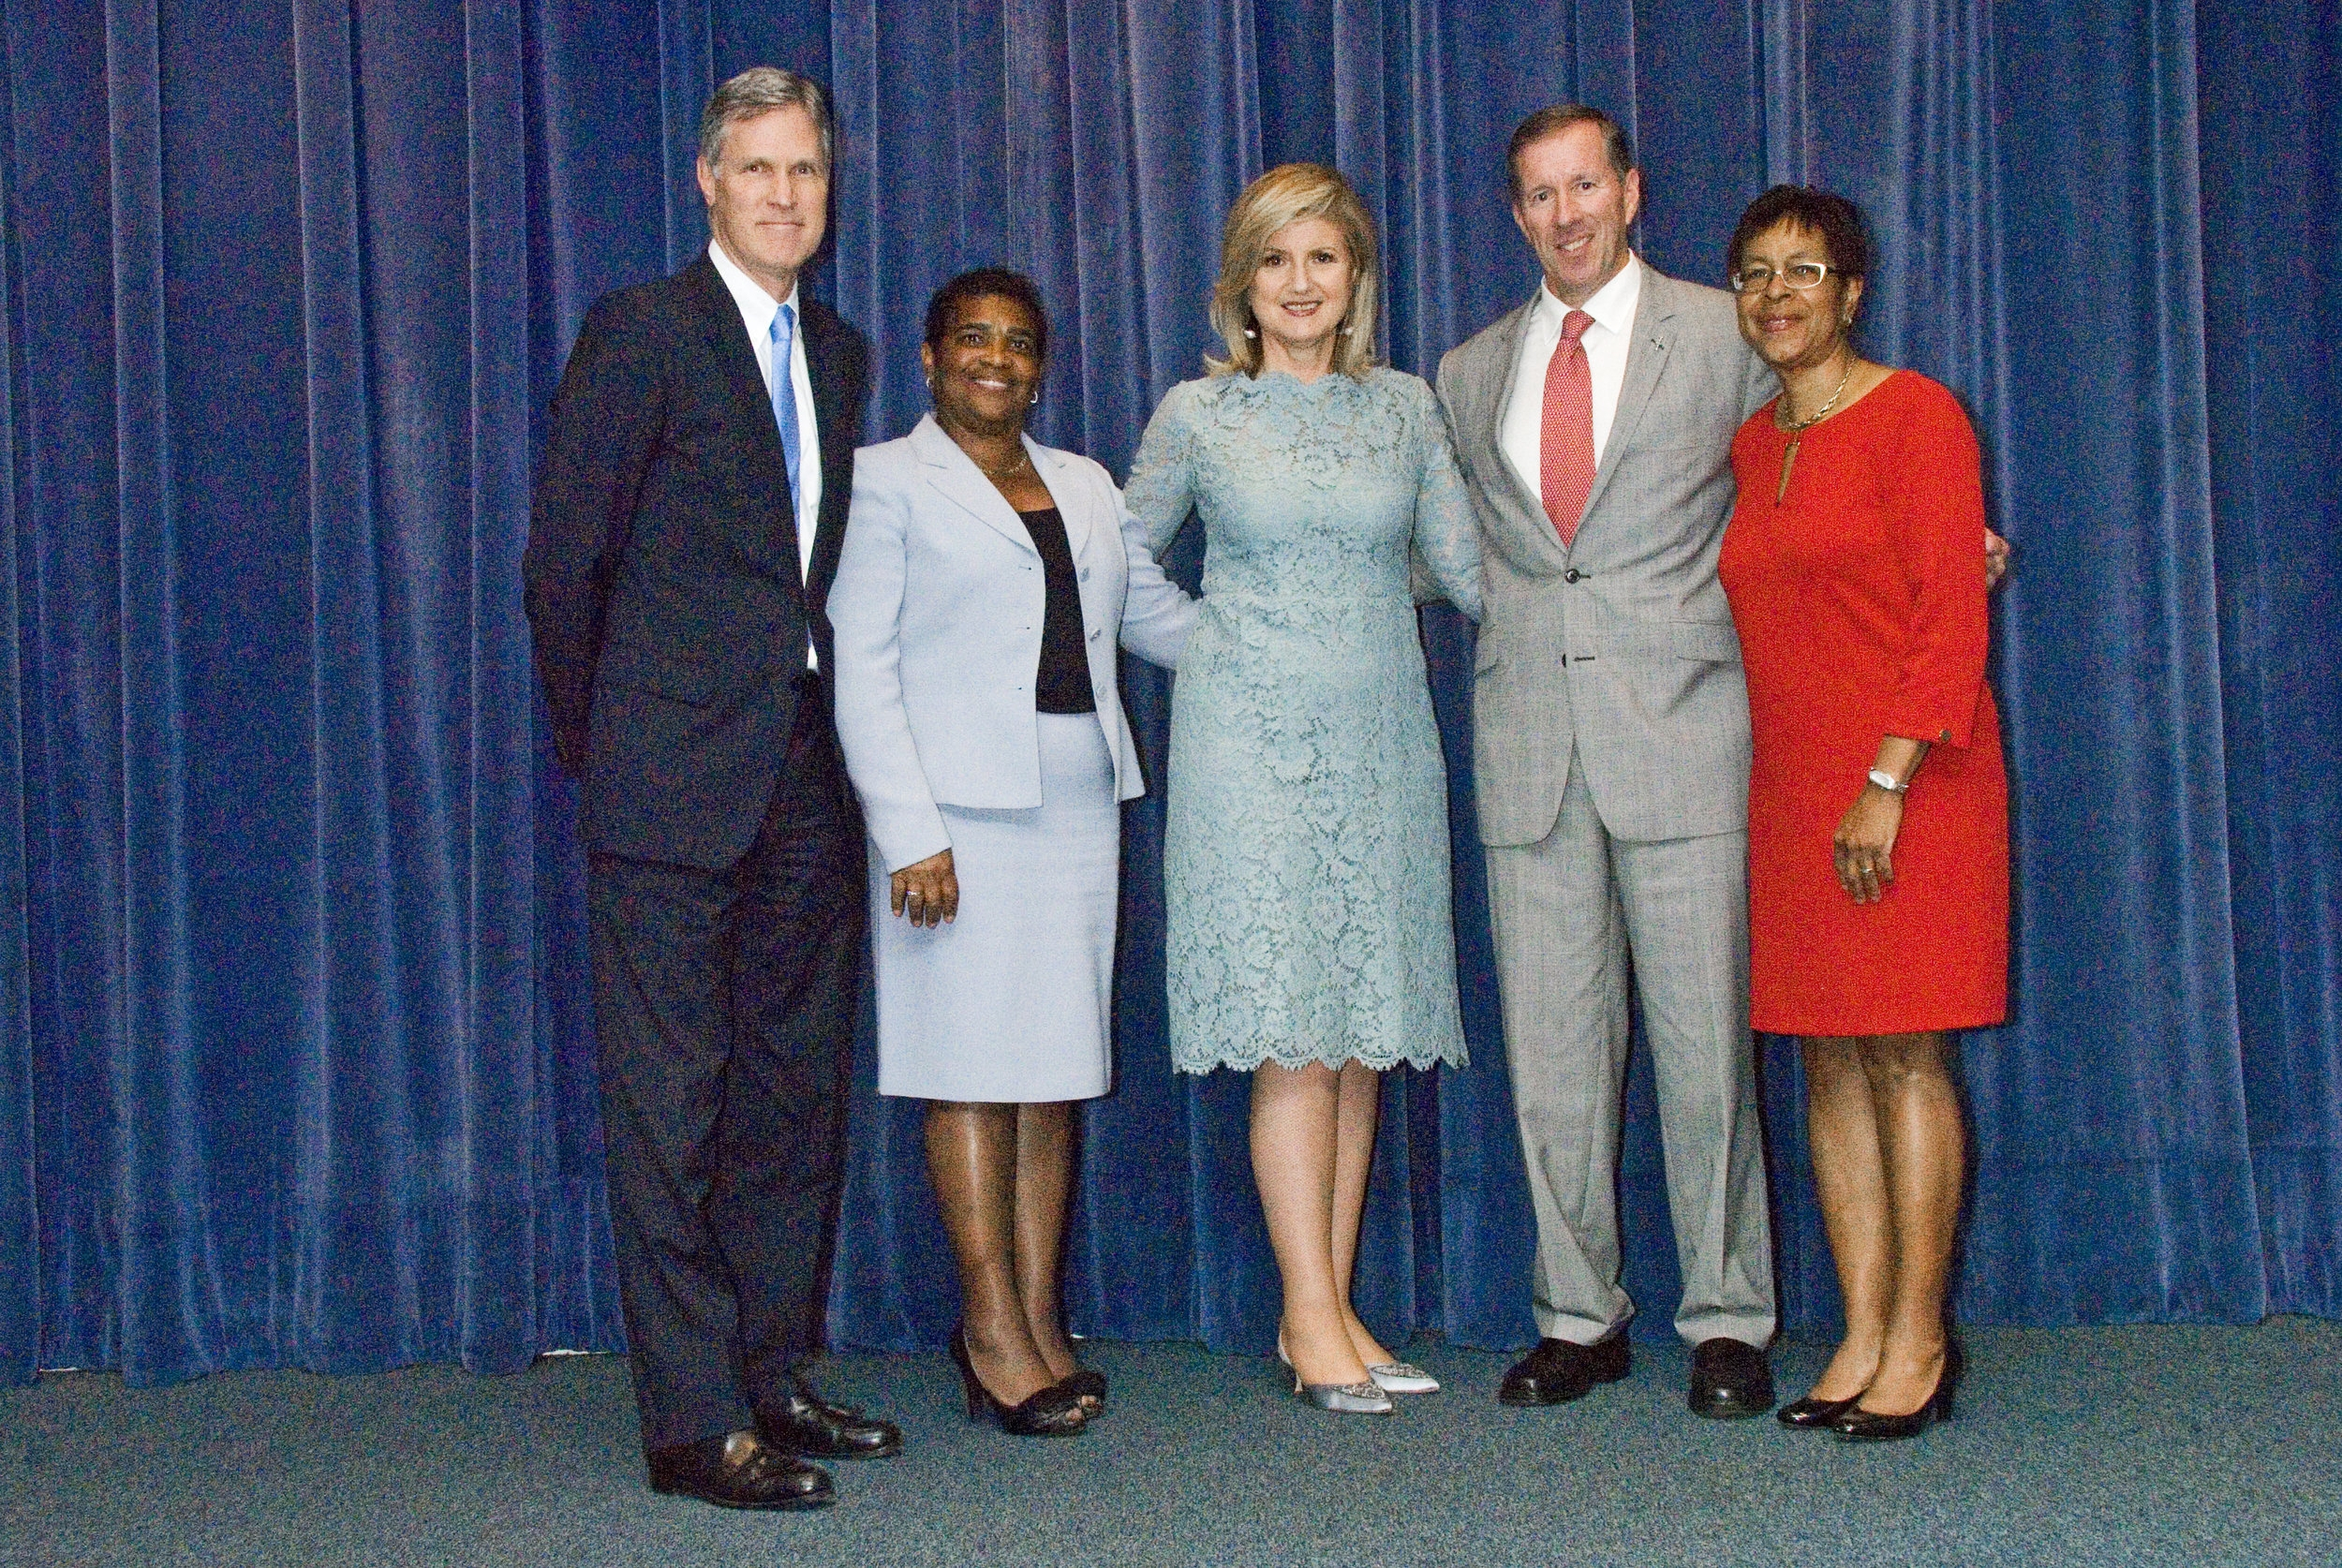 Ms. Huffington (center) with (left to right) Dr. Grant Gibbons, Minister Pamela Gordon-Pamplin, Premier Michael Dunkley and Minister Jeanne Atherden.